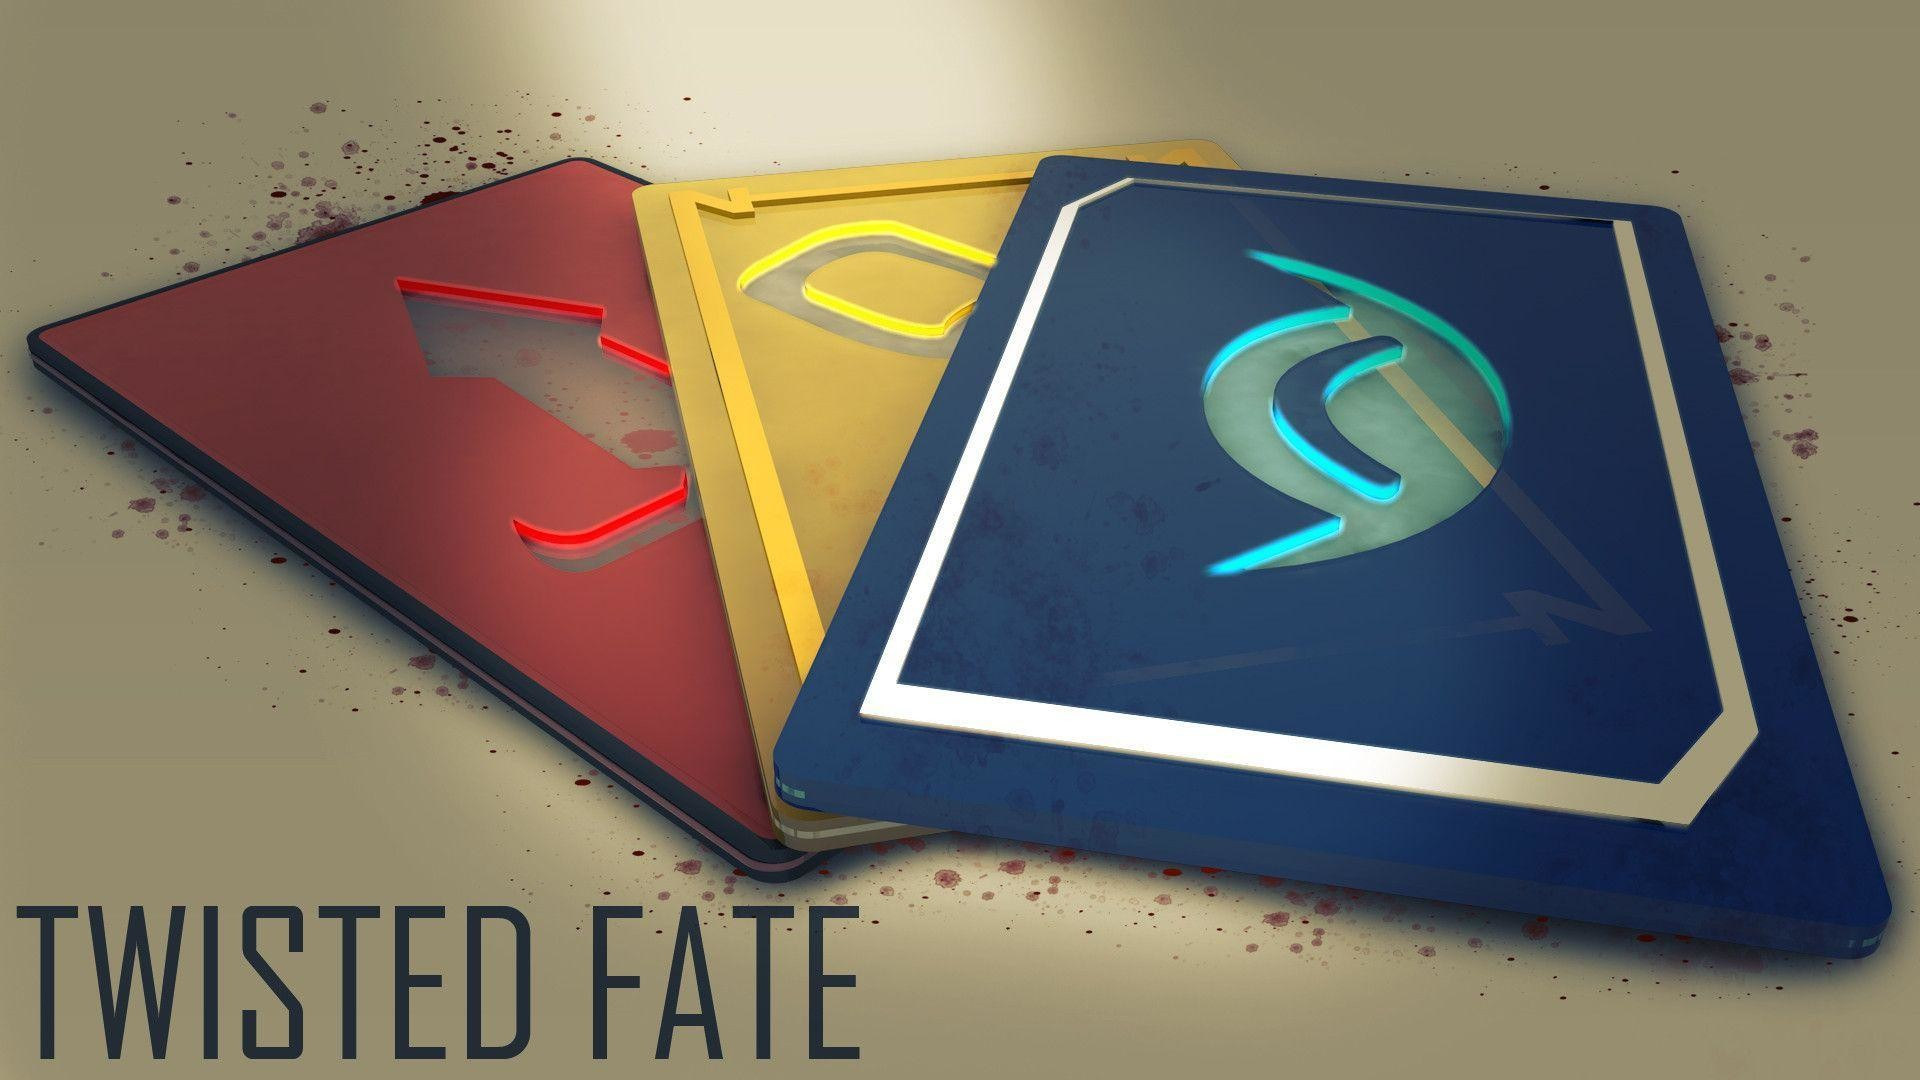 Twisted fate wallpaper hd 84 images 1920x1080 twisted fate wallpaper i made when i got bored leagueoflegends voltagebd Gallery